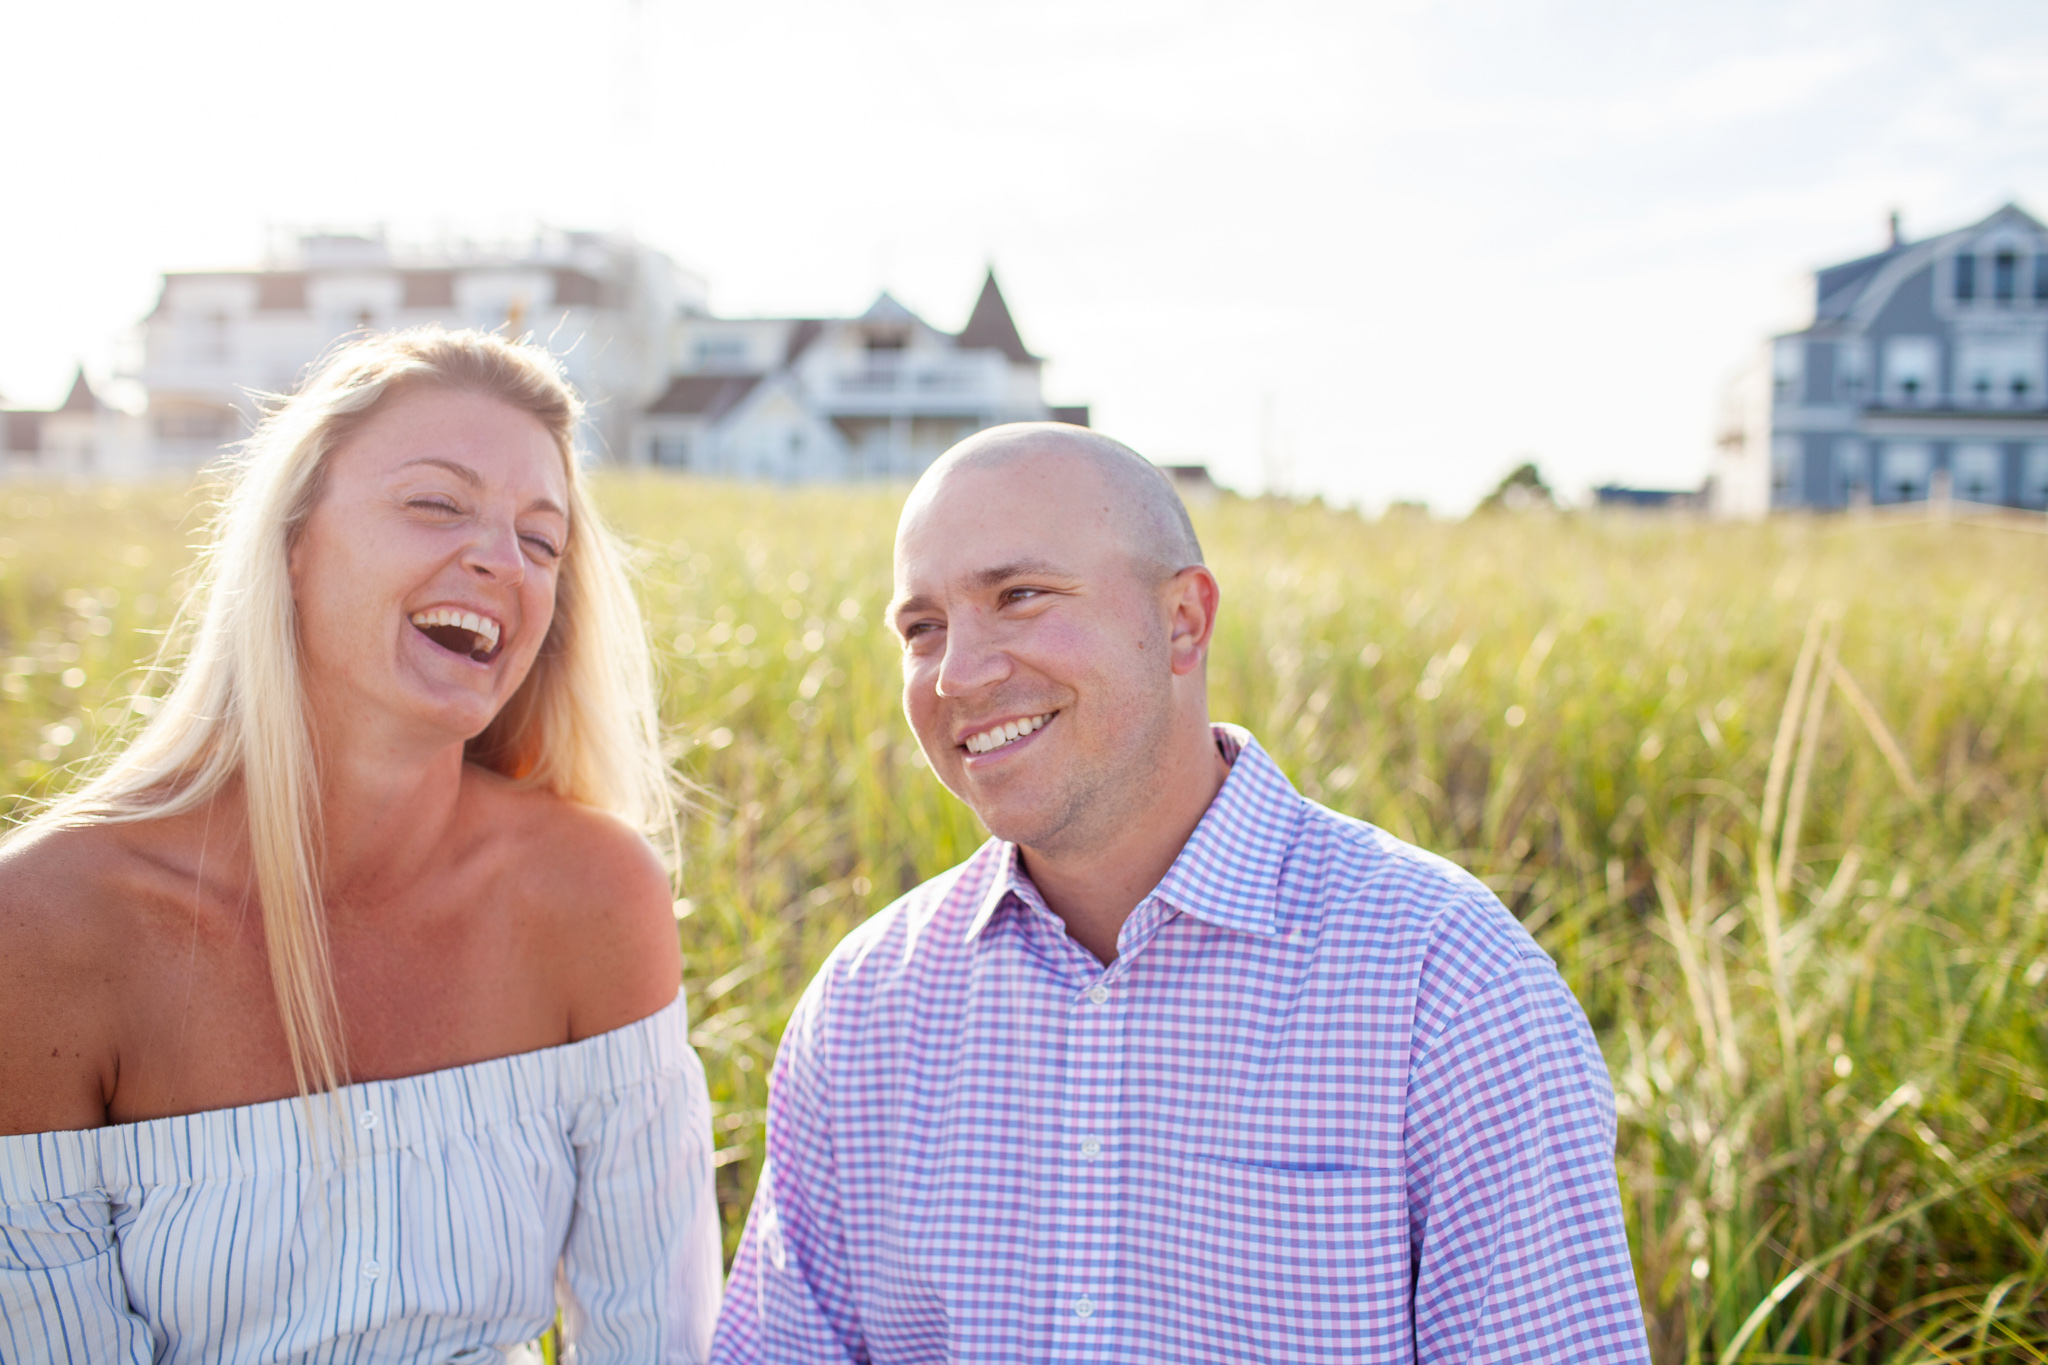 maine-beach-engagement-session-stepheneycollinsphotography-11.jpg